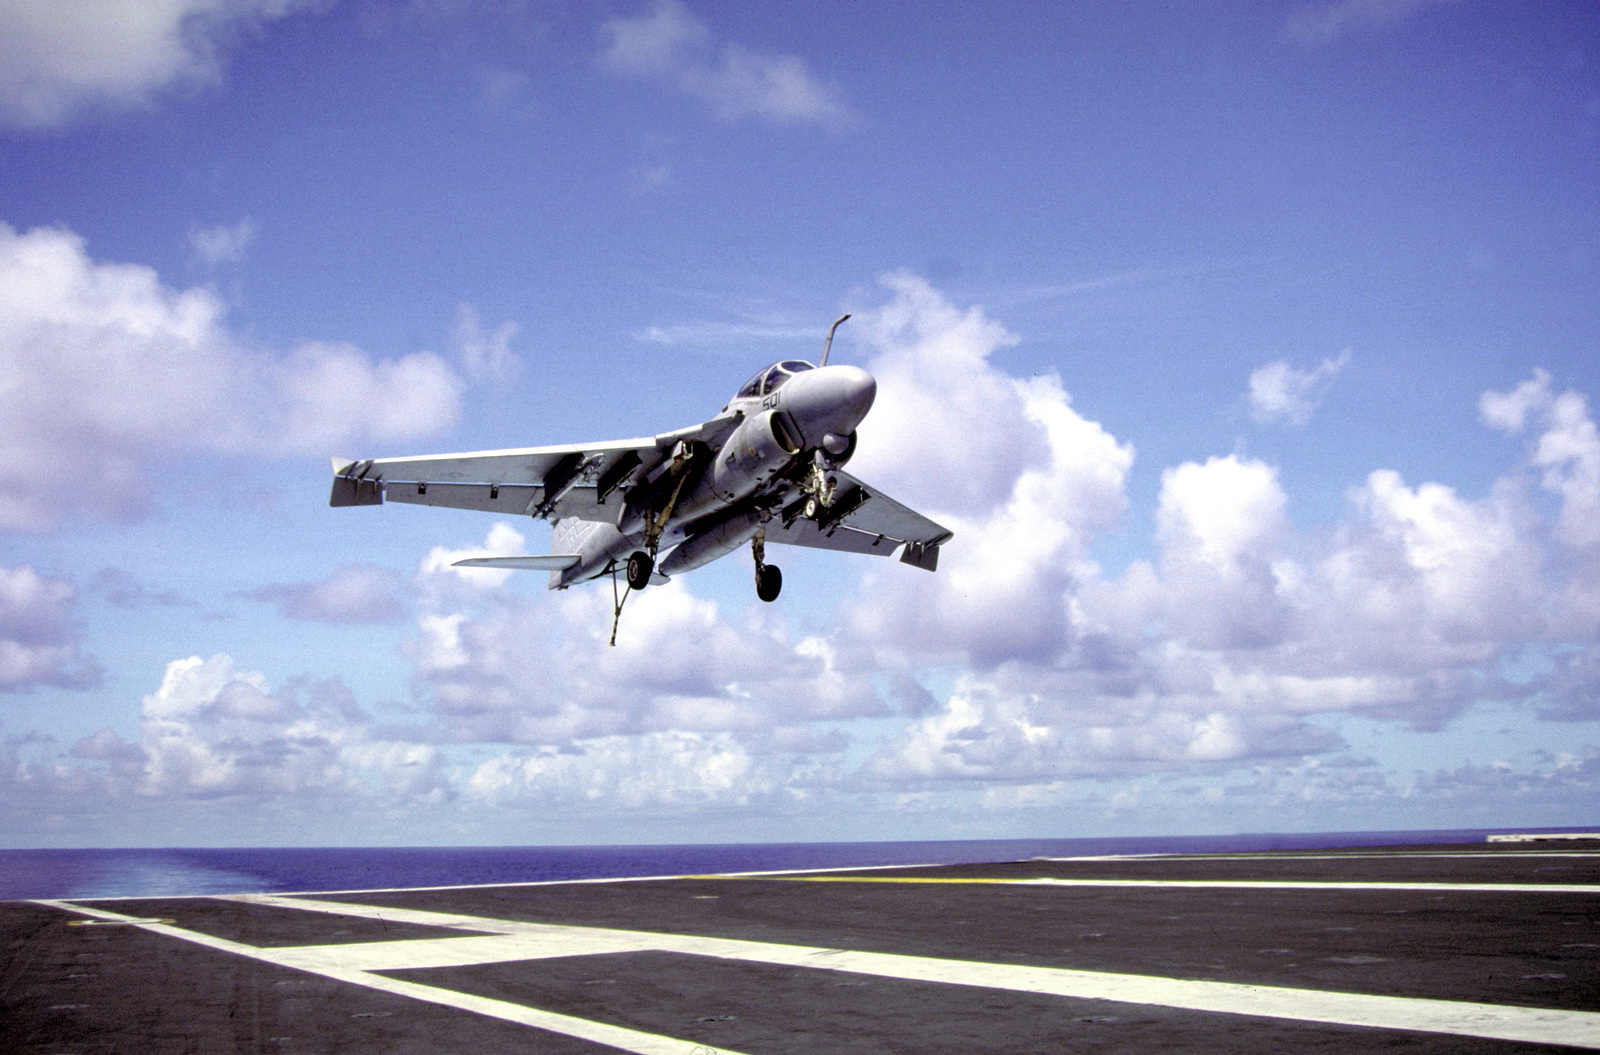 An Attack Squadron 95 (VA-95) A-6E Intruder aircraft comes in for a landing on the flight deck of the nuclear-powered aircraft carrier USS ABRAHAM LINCOLN (CVN-72)